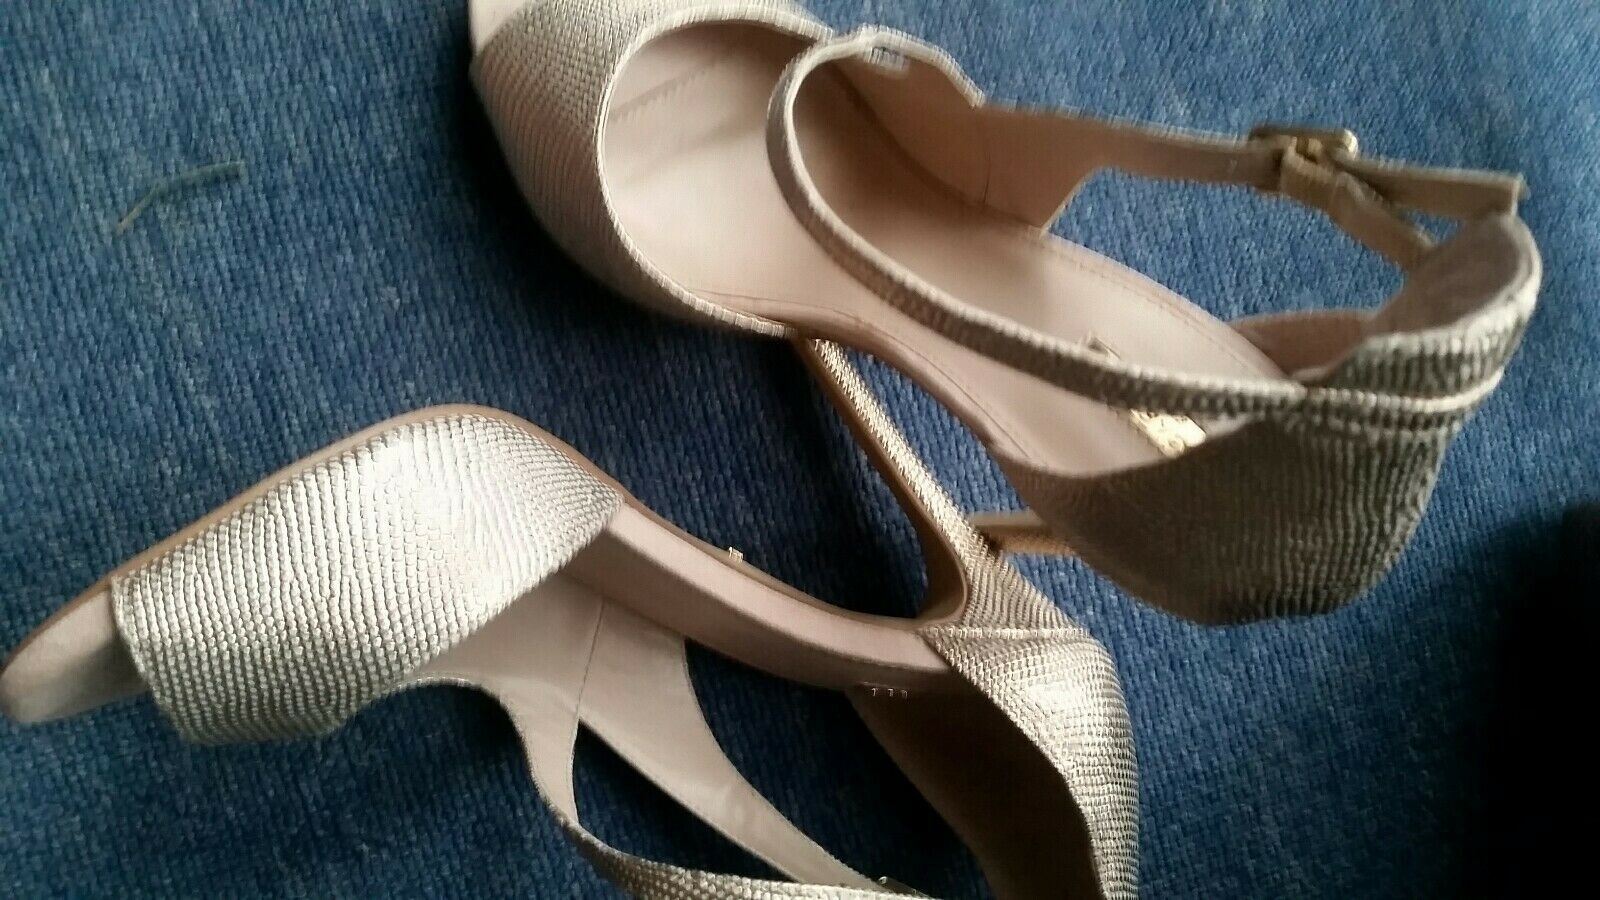 Carvel Ladies Heels Sandals Size 7